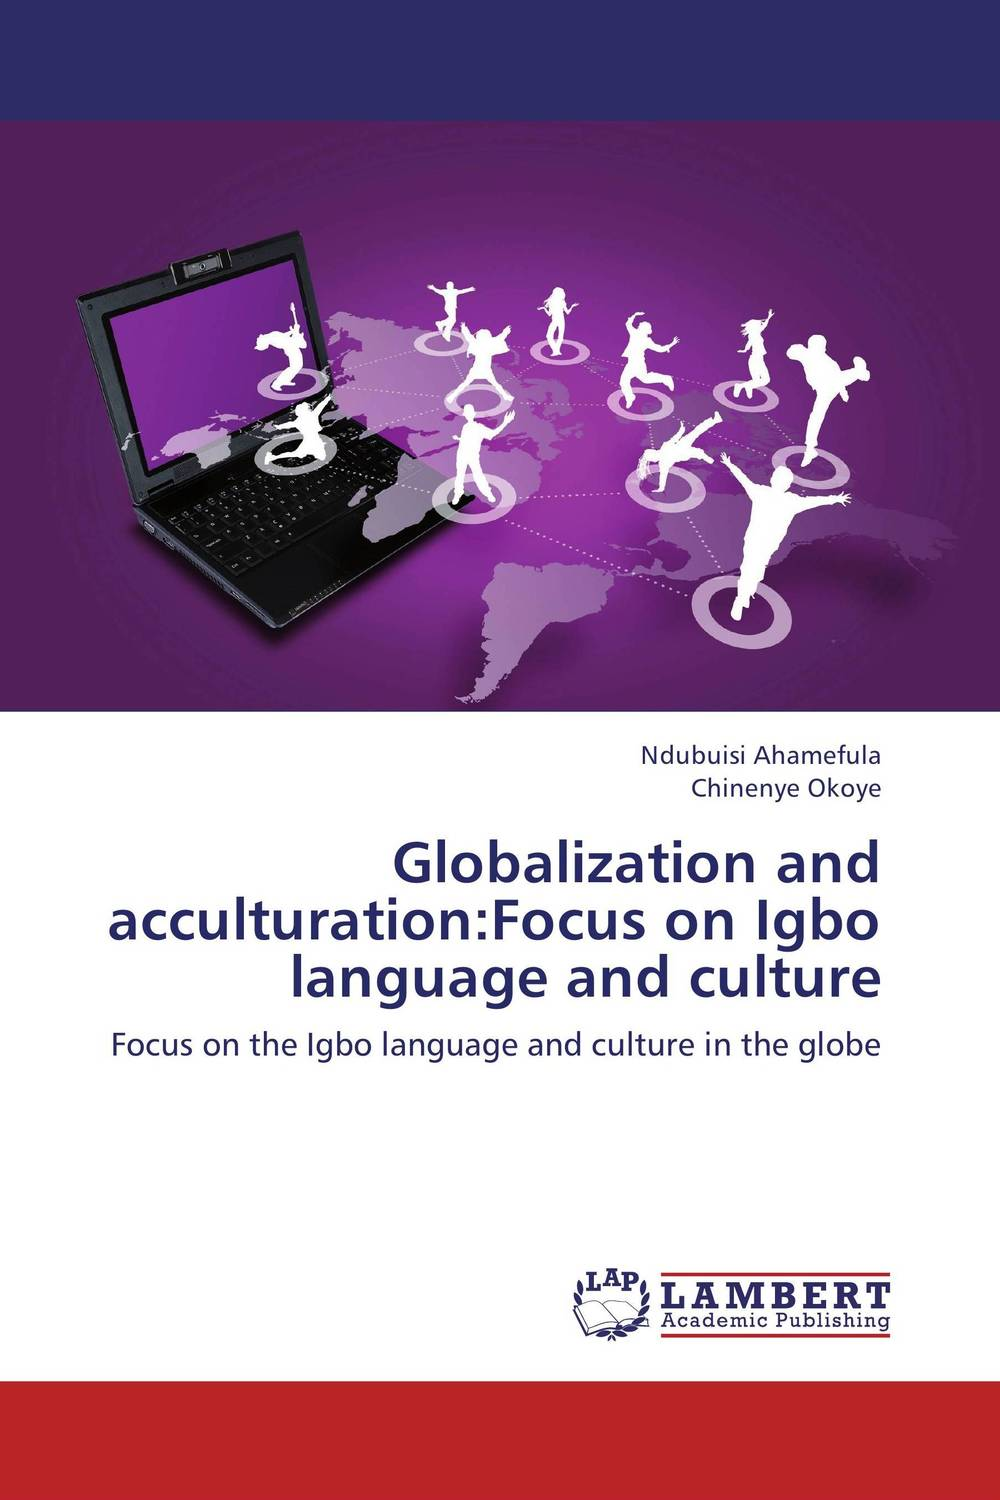 Globalization and acculturation:Focus on Igbo language and culture